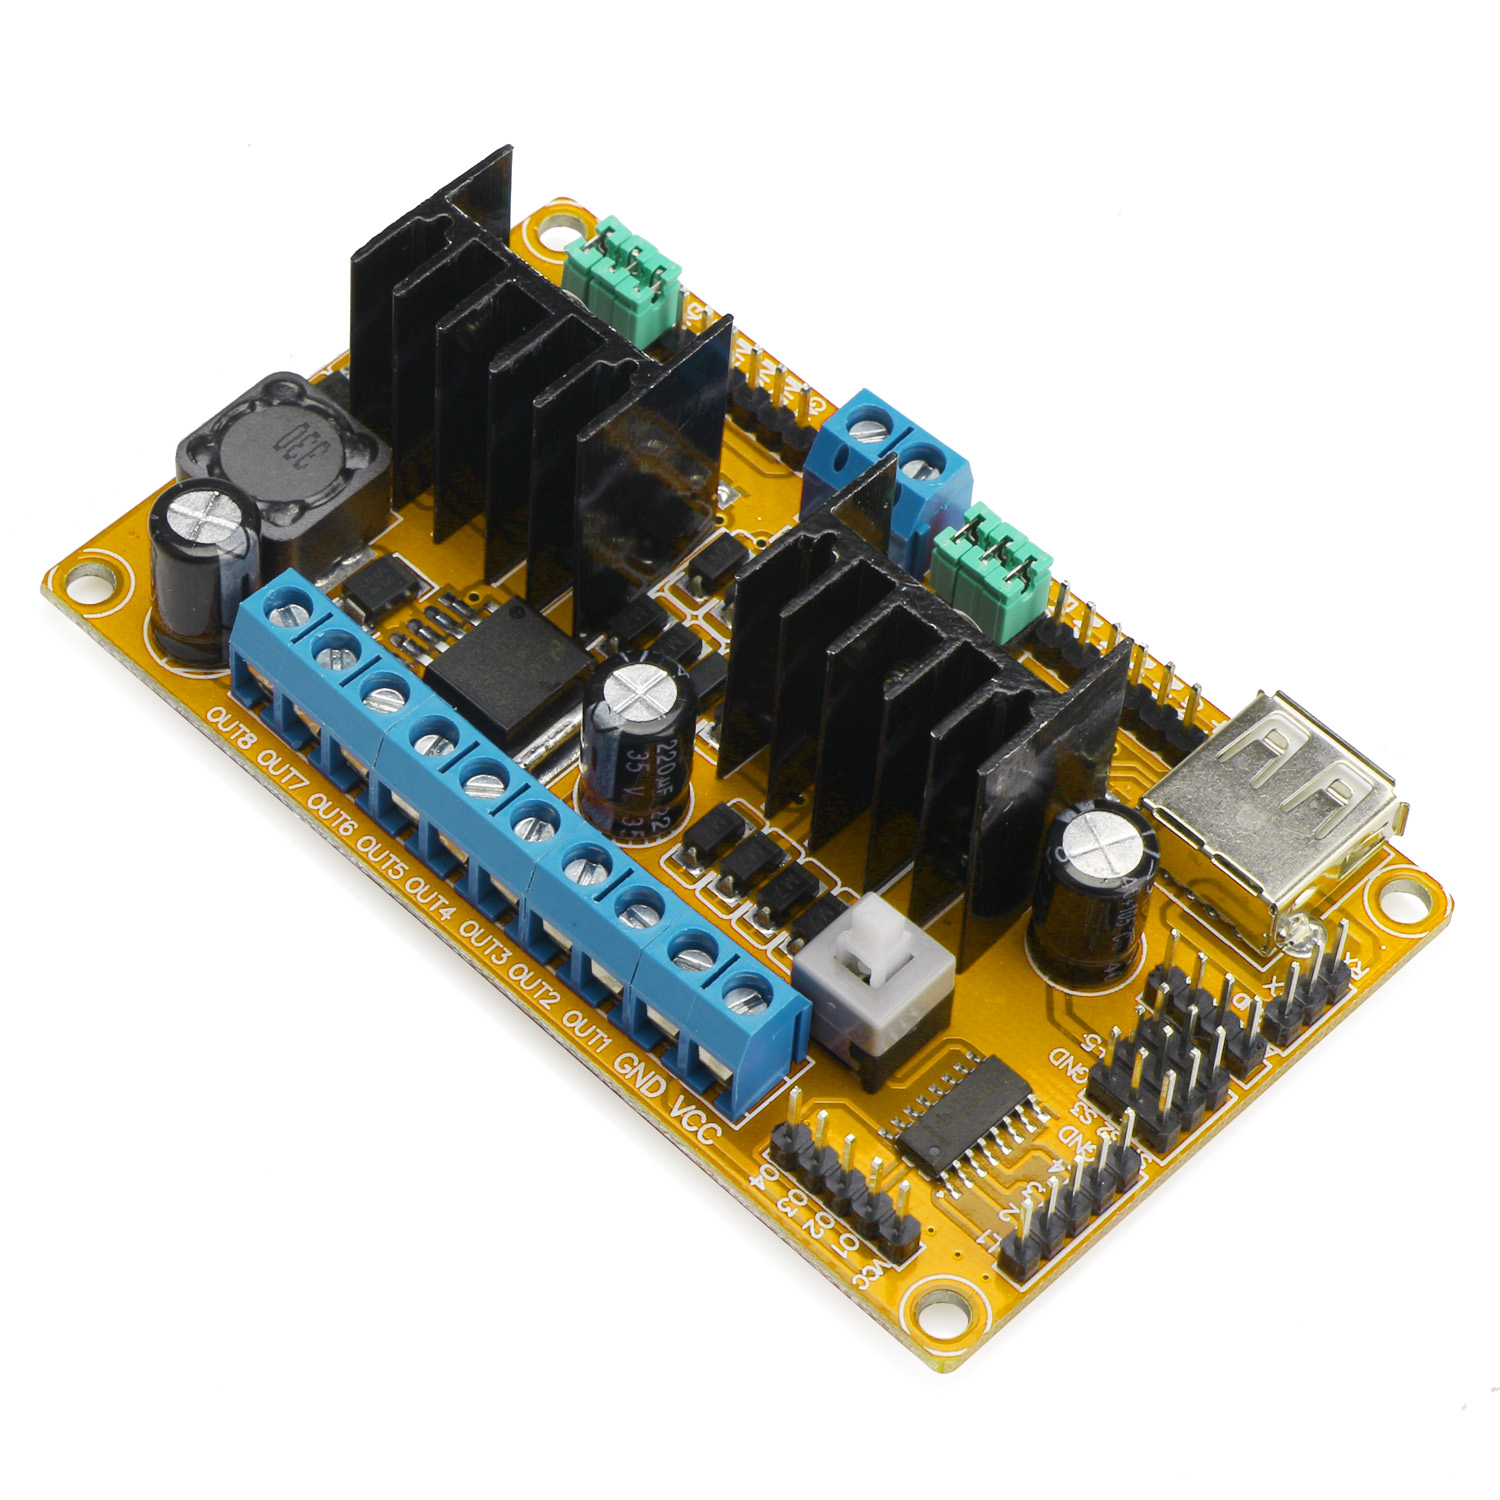 L298n Dc Stepper Motor Drive Controller Board Module Four Motors And Used As Actuators Integrated For Arduino Wifi